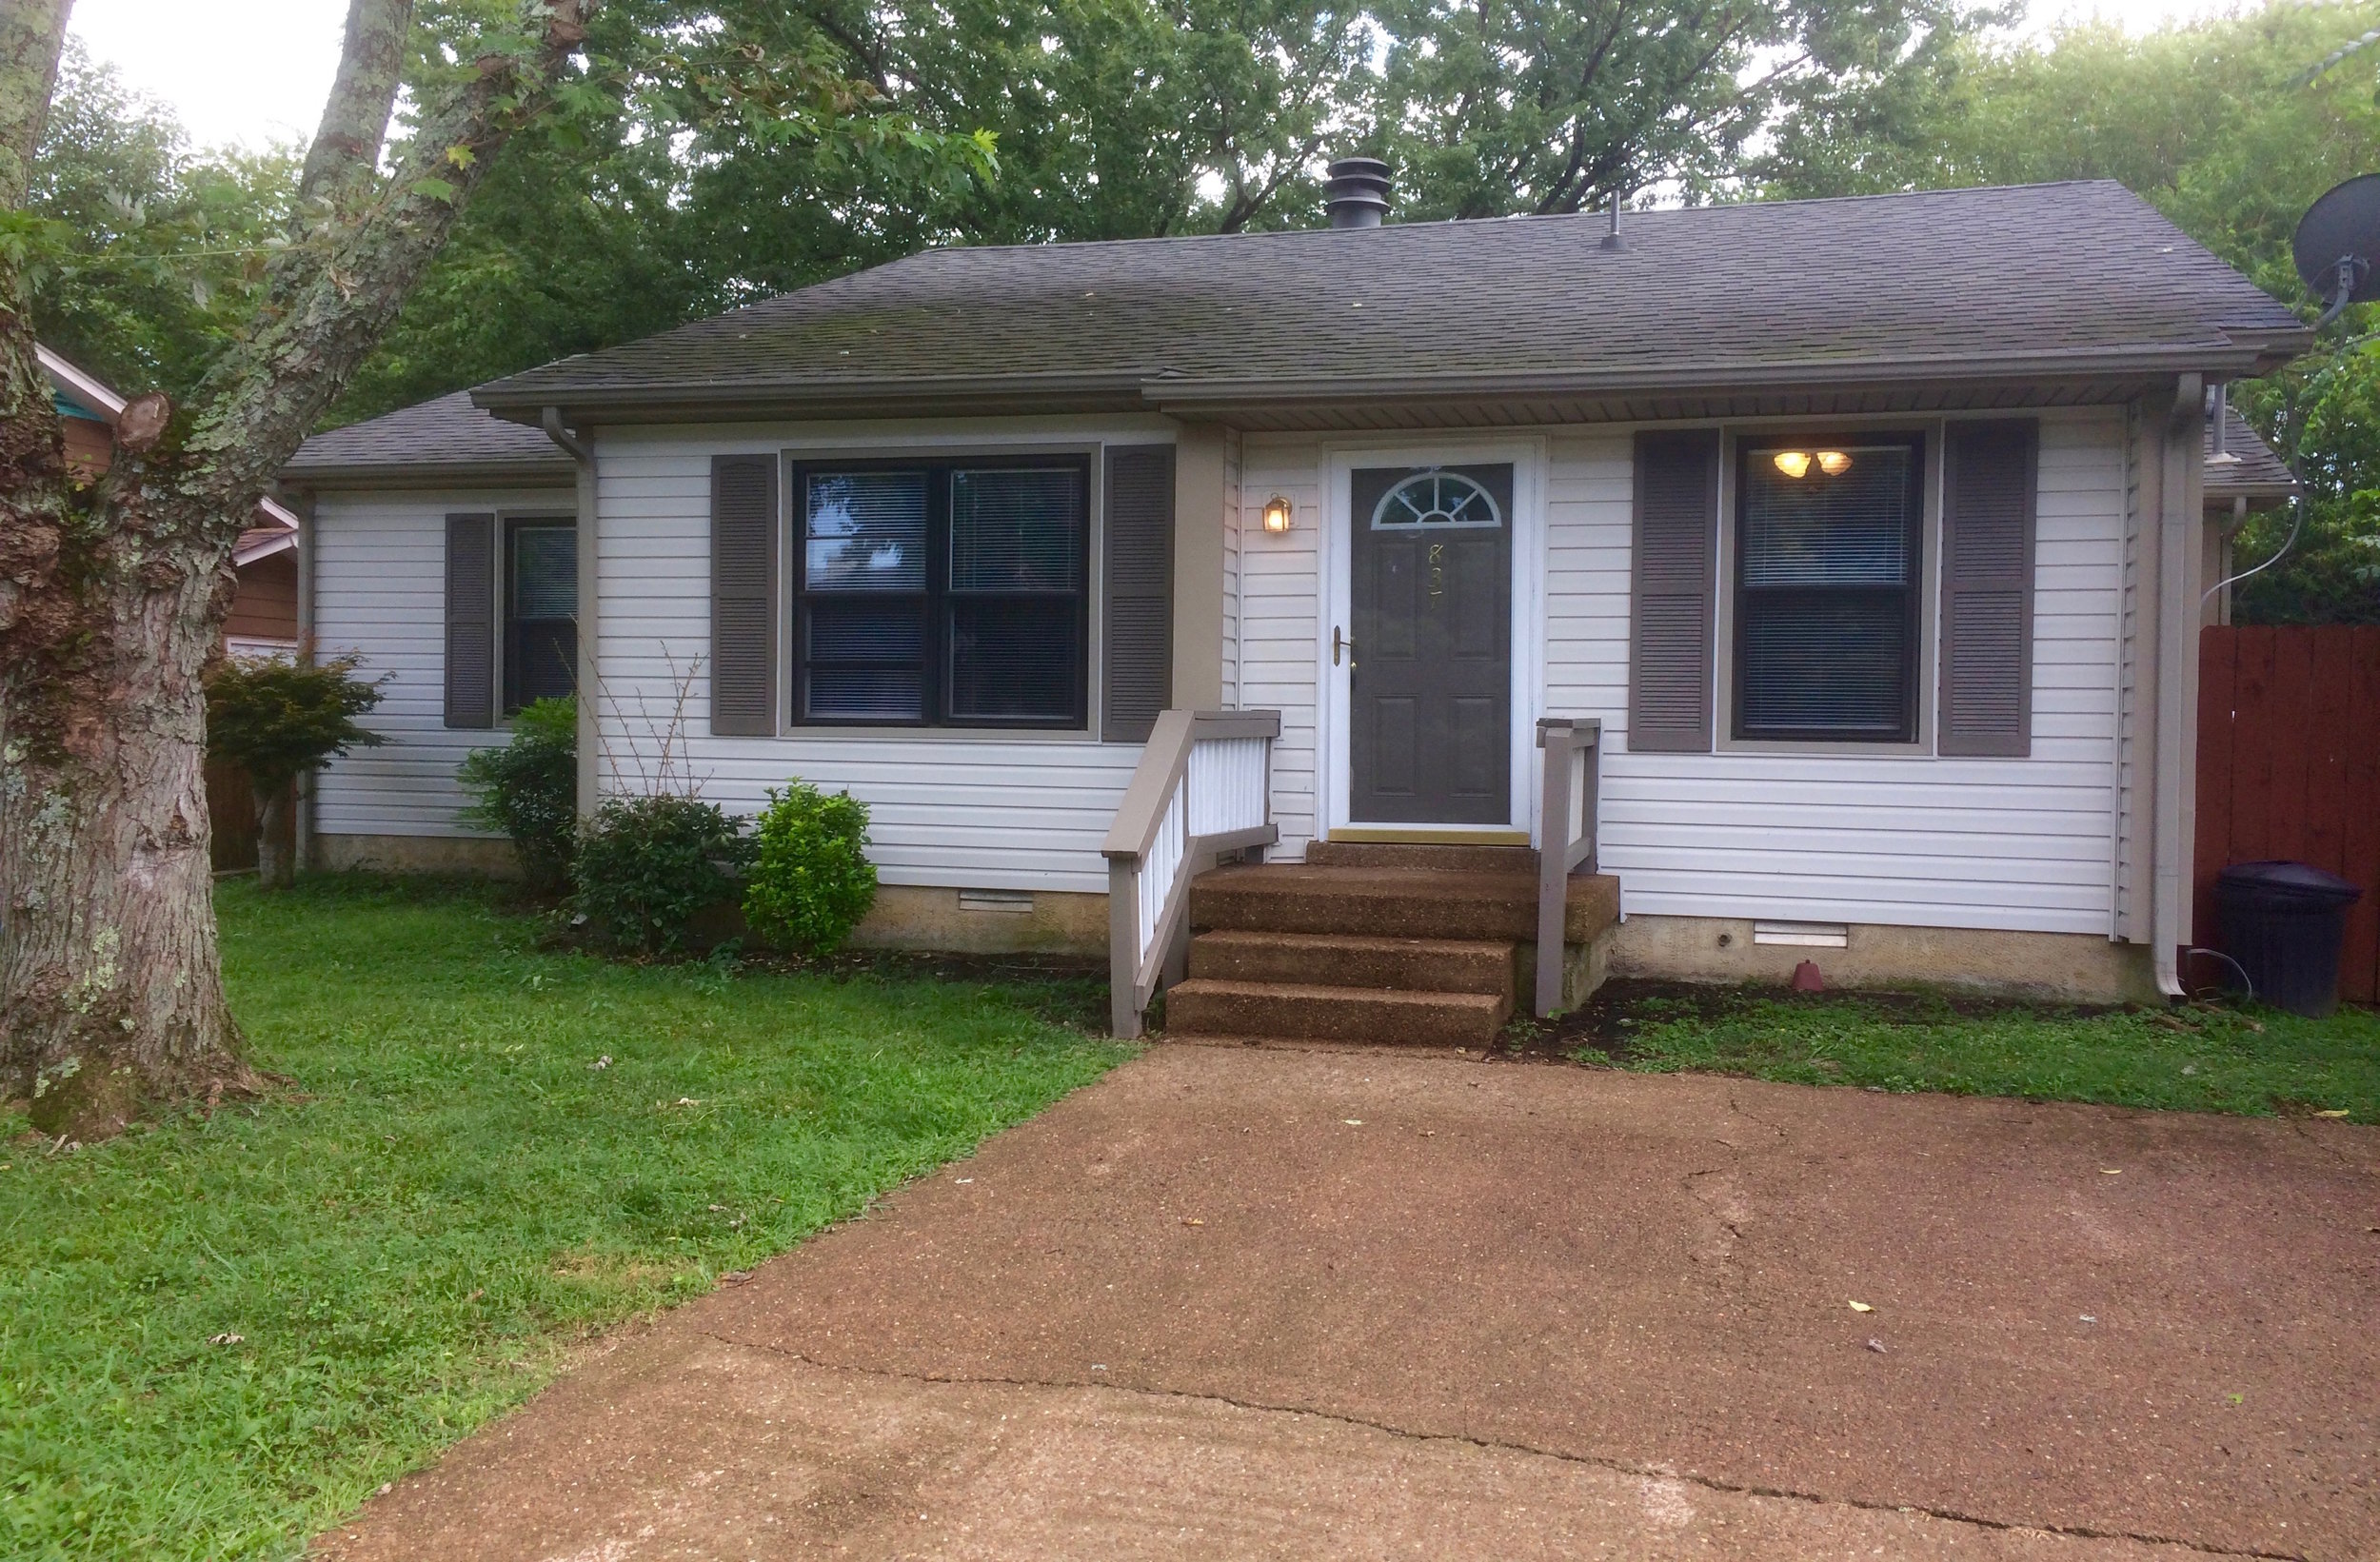 837 RENTED  MADISON: 837 Heritage Circle: Home: 3 Br 1.5 Ba